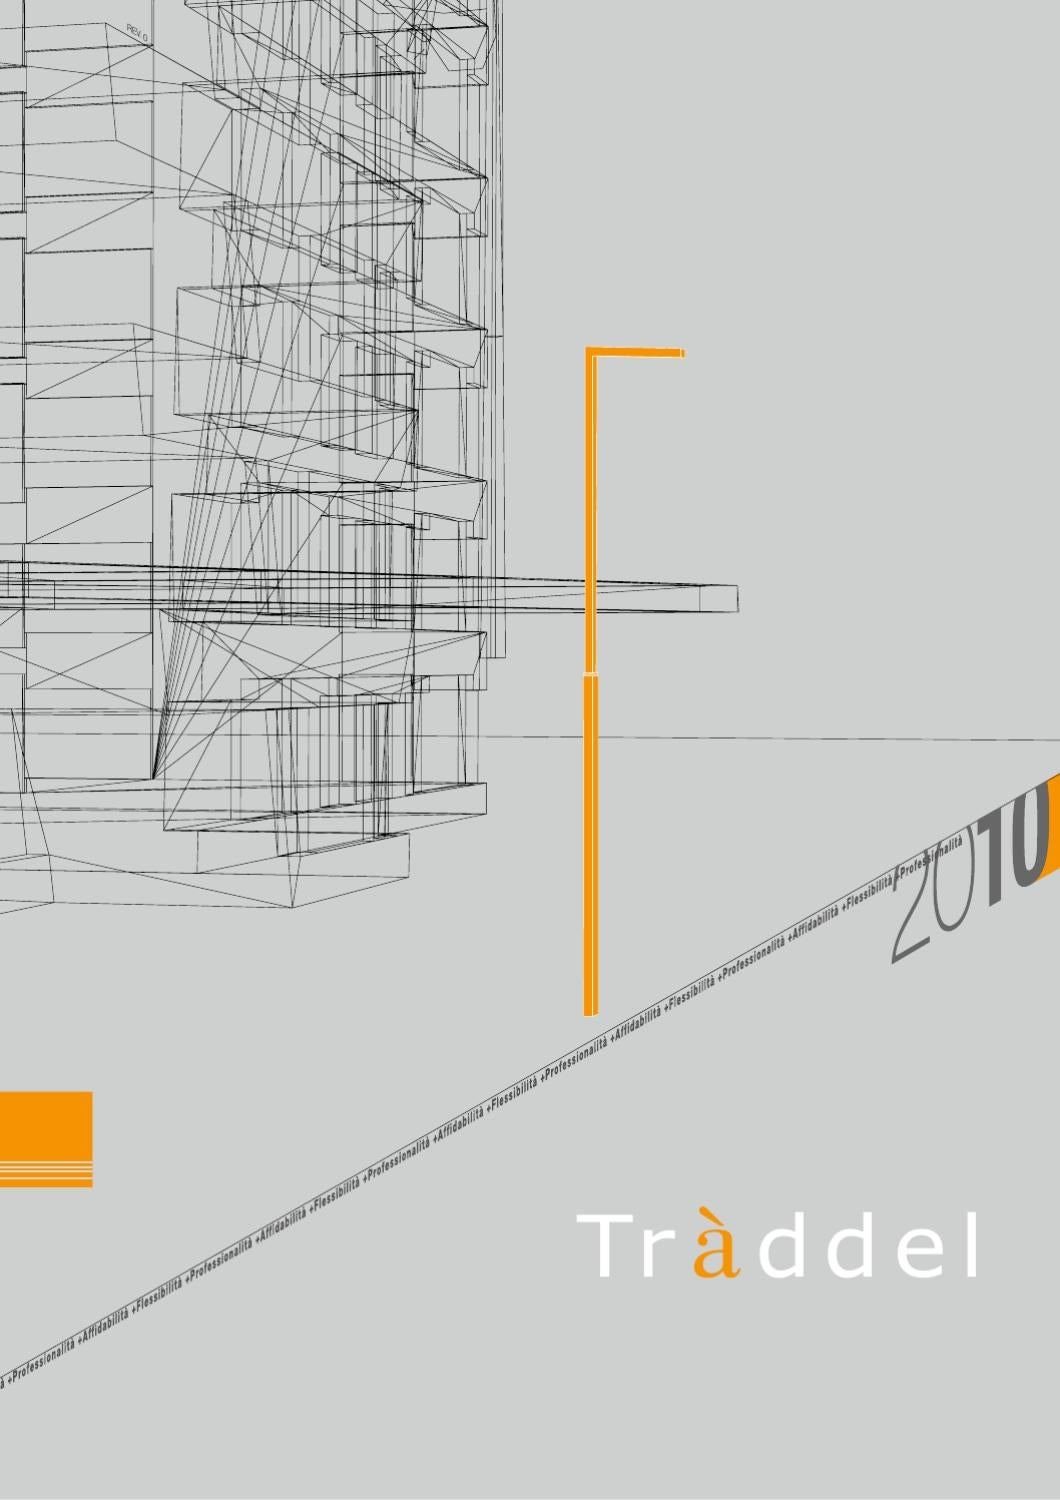 Traddel_2010 by lightonline - issuu